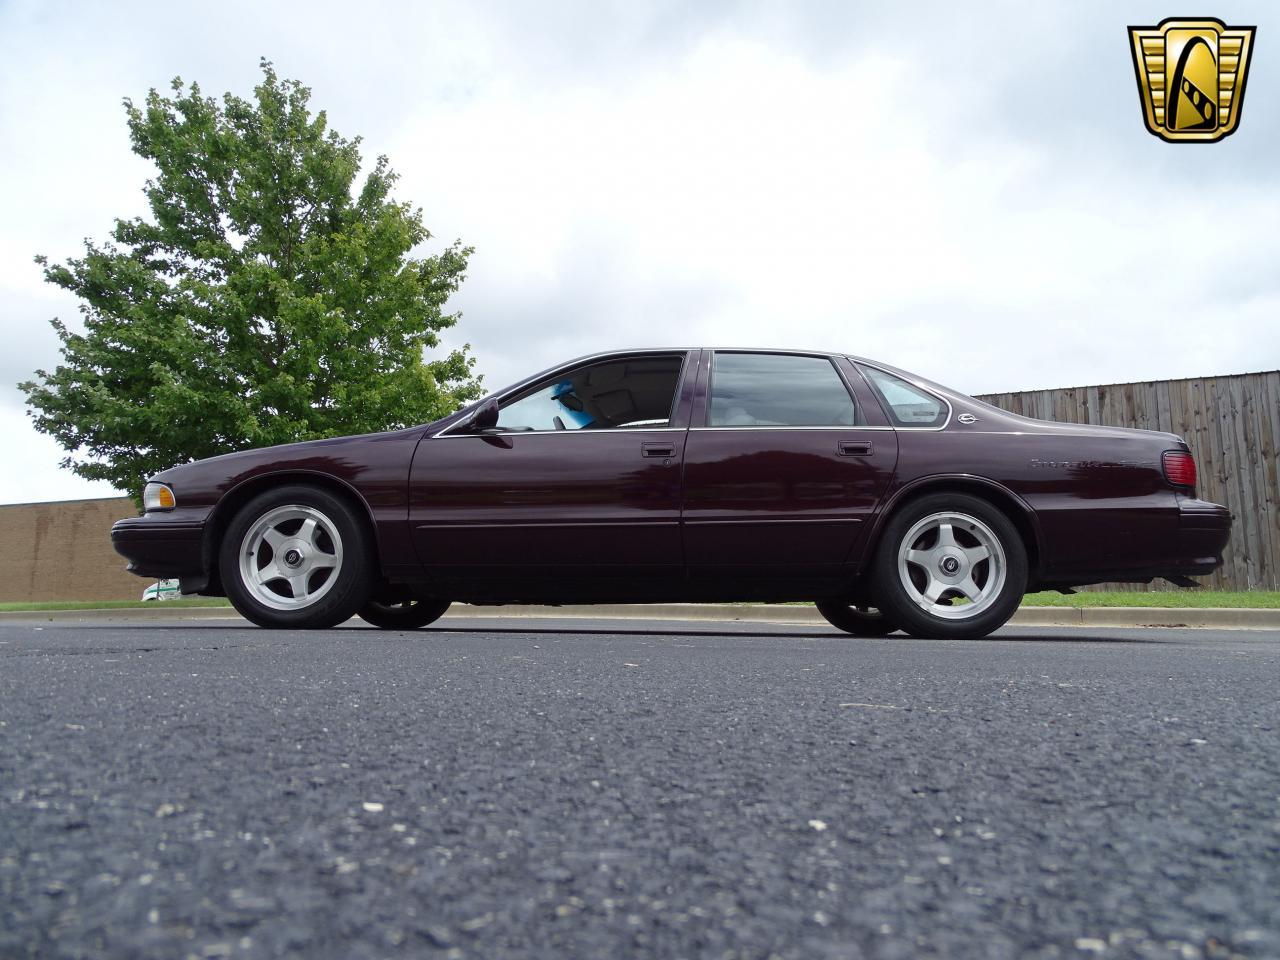 Large Picture of '96 Impala - $19,000.00 Offered by Gateway Classic Cars - St. Louis - QB5K